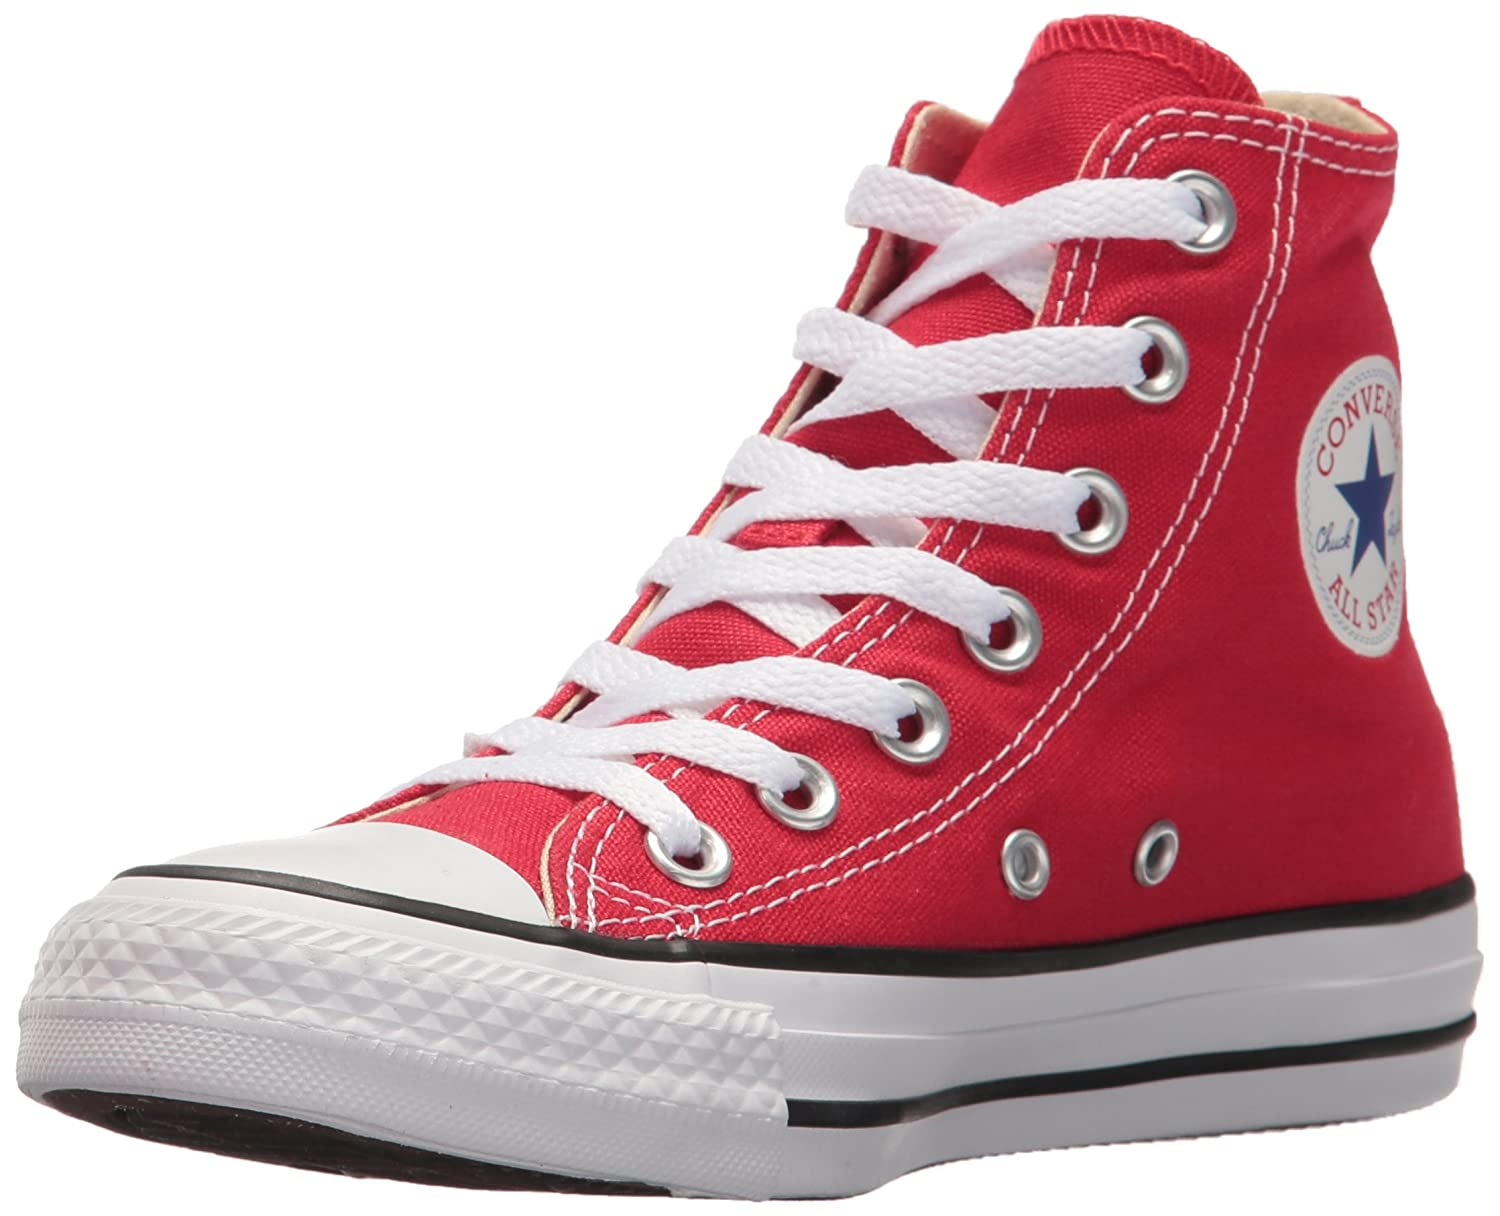 Converse Chuck Taylor All Star Seasonal Color Hi B01LZ87AKM 38 M EU / 7.5 B(M) US Women / 5.5 D(M) US Men|Red